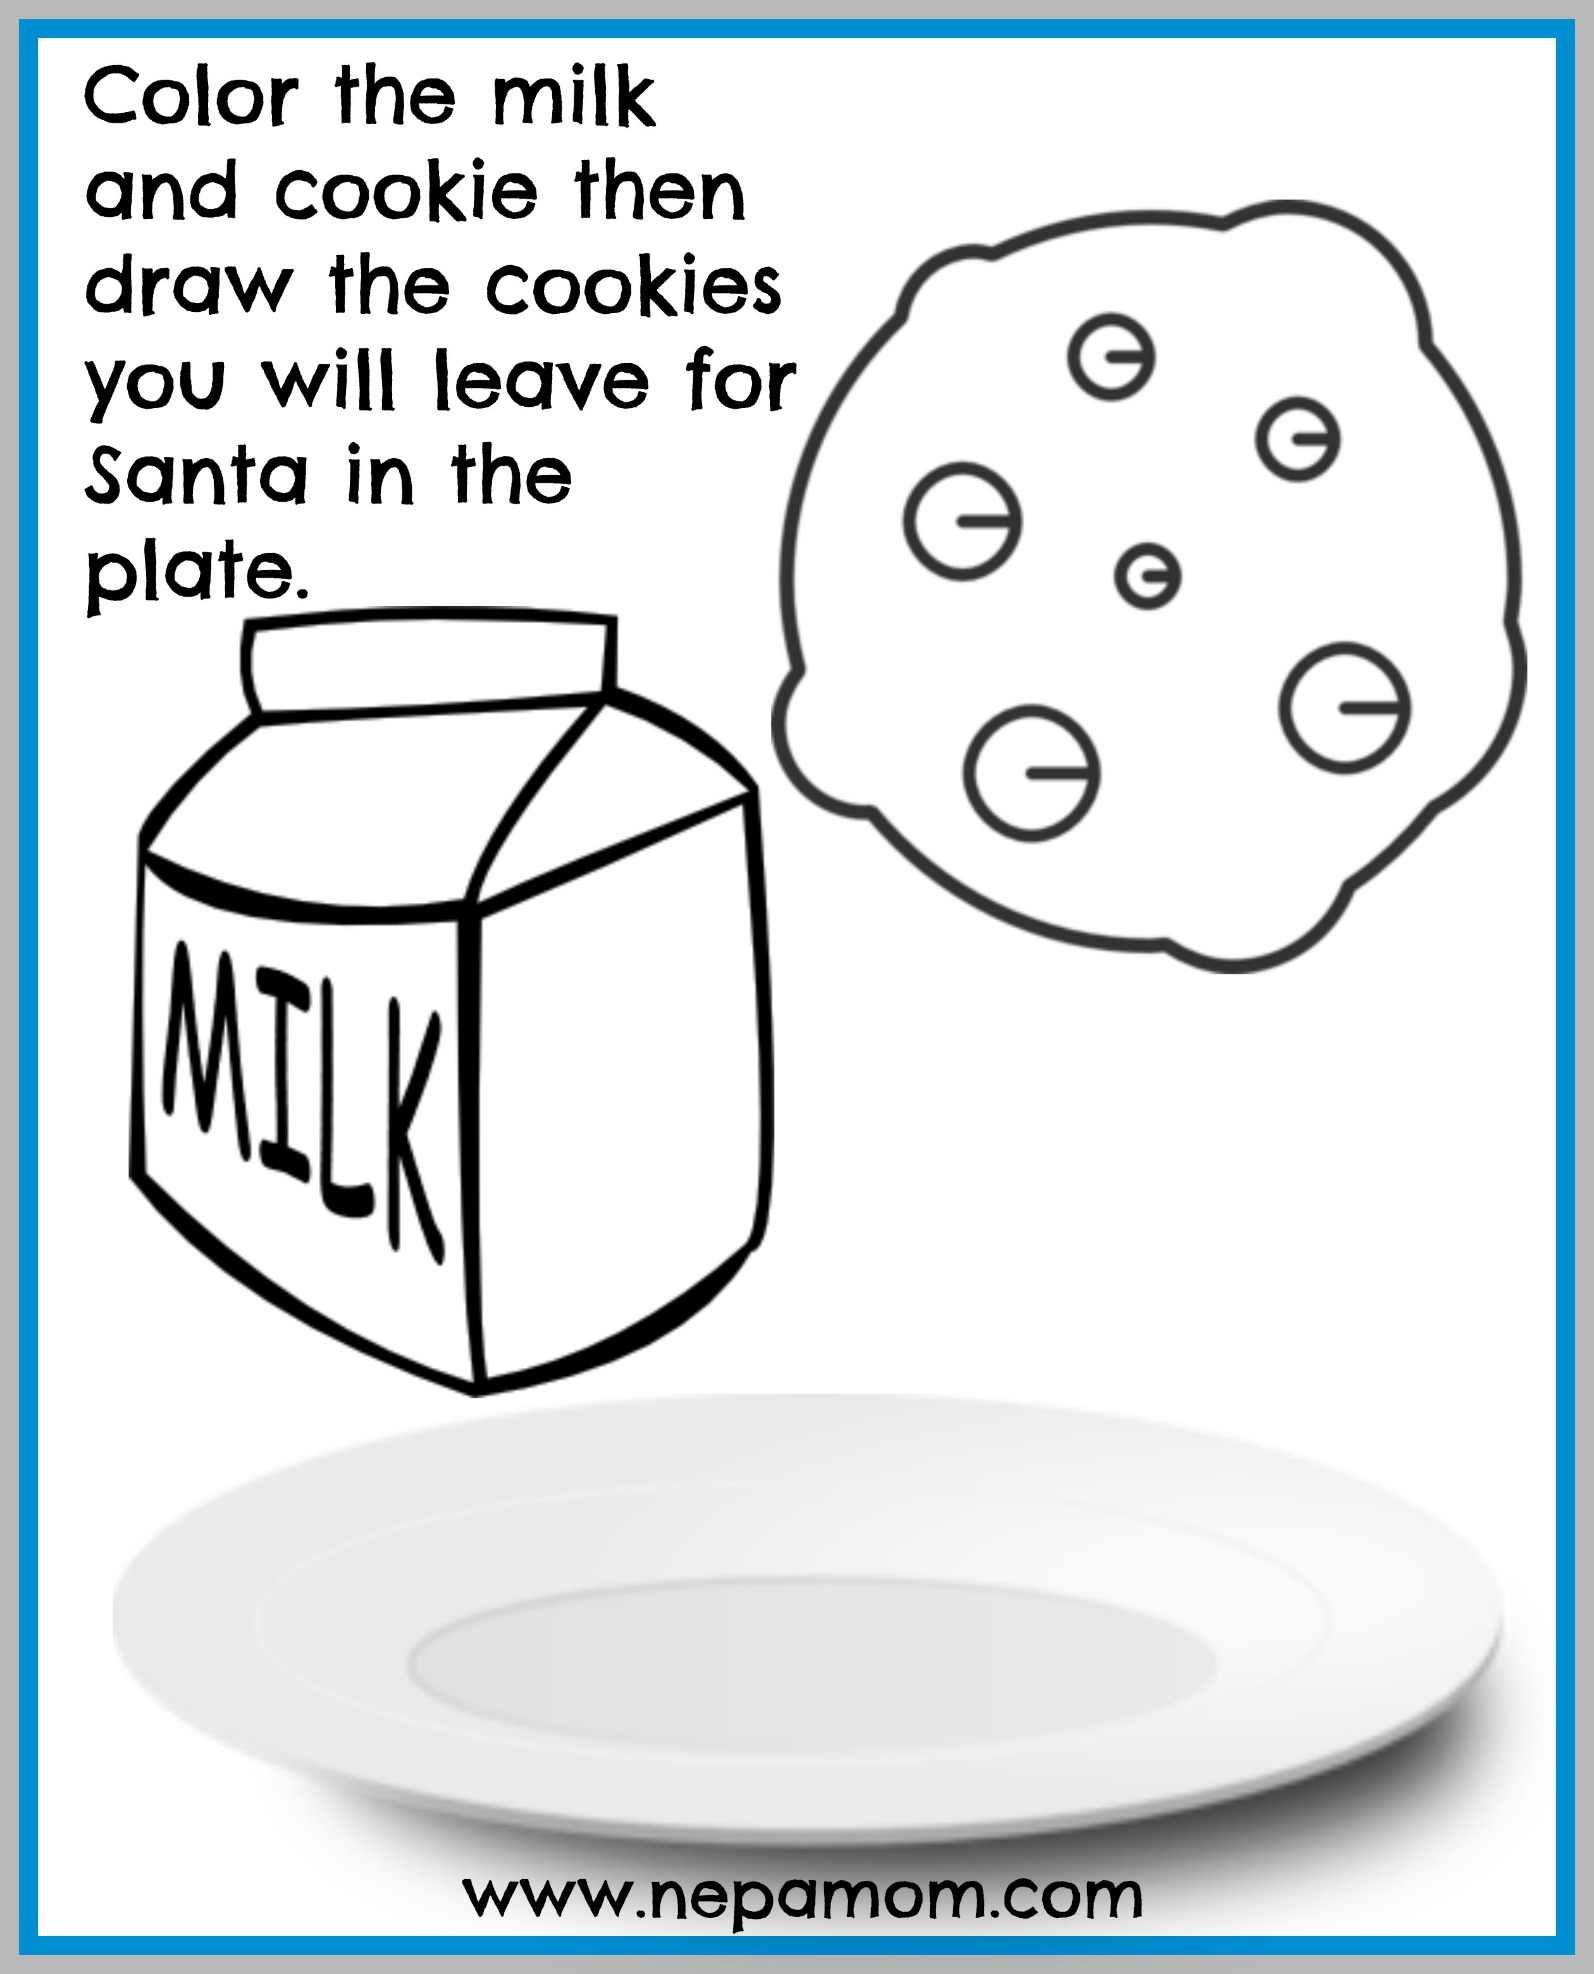 coloring sheetschristmas 2 milk and cookies